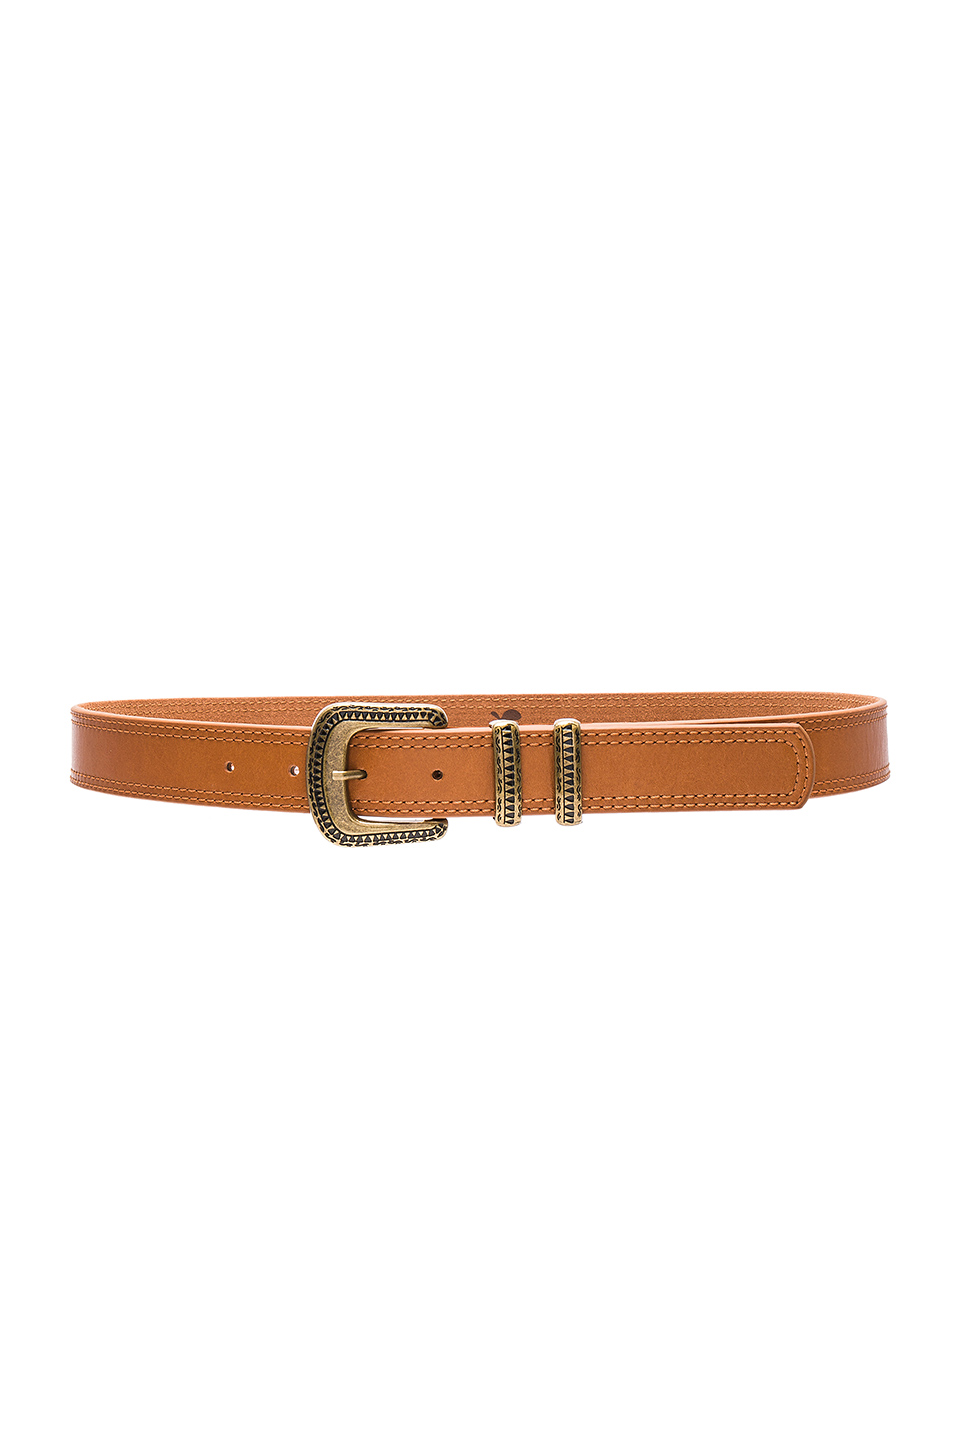 Lovestrength Florence Hip Belt in Honey & Antique Brass